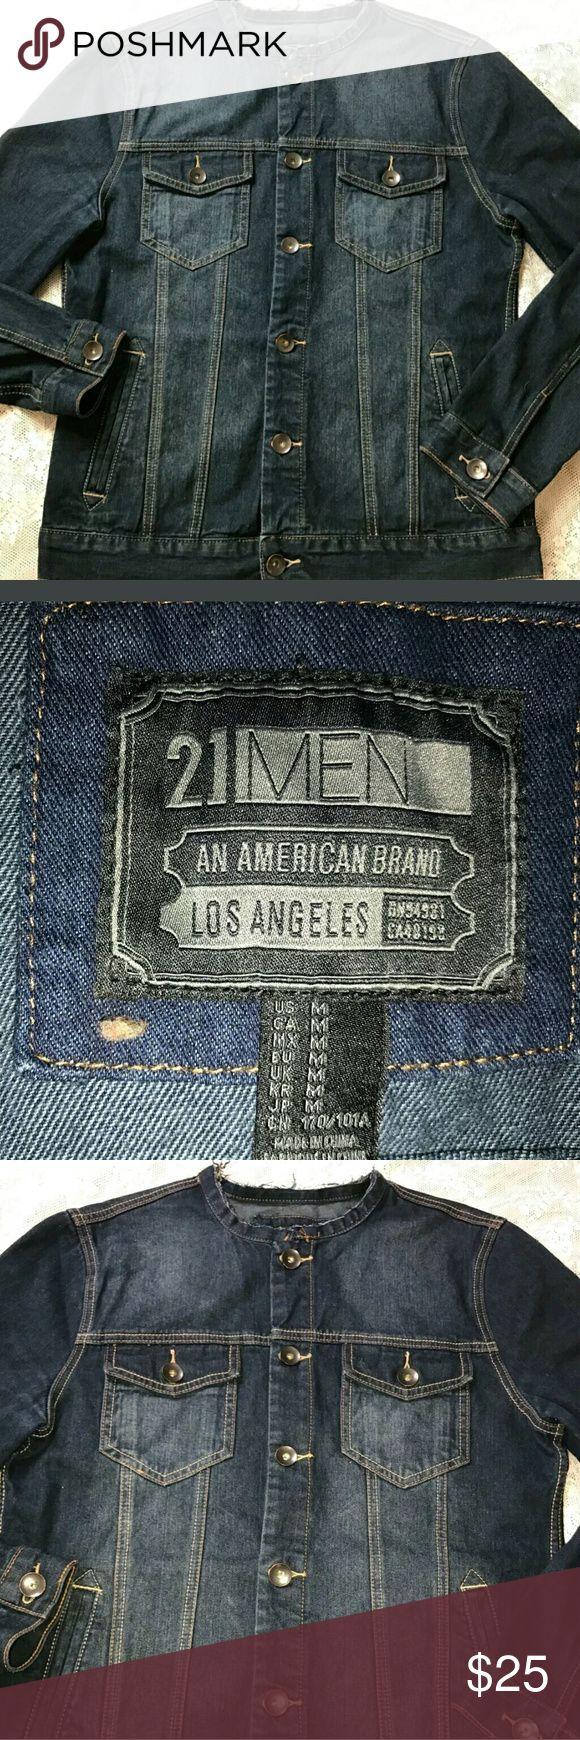 Forever 21 jean jacket denim dark wash distressed Mens medium forever 21 dark wash kean jacket with sick distressed collar. Bought new never wore it. No tags attached. 24 inches pit to pit and 26 in length from the top of the shoulder to the bottom of the jacket. 21men Jackets & Coats